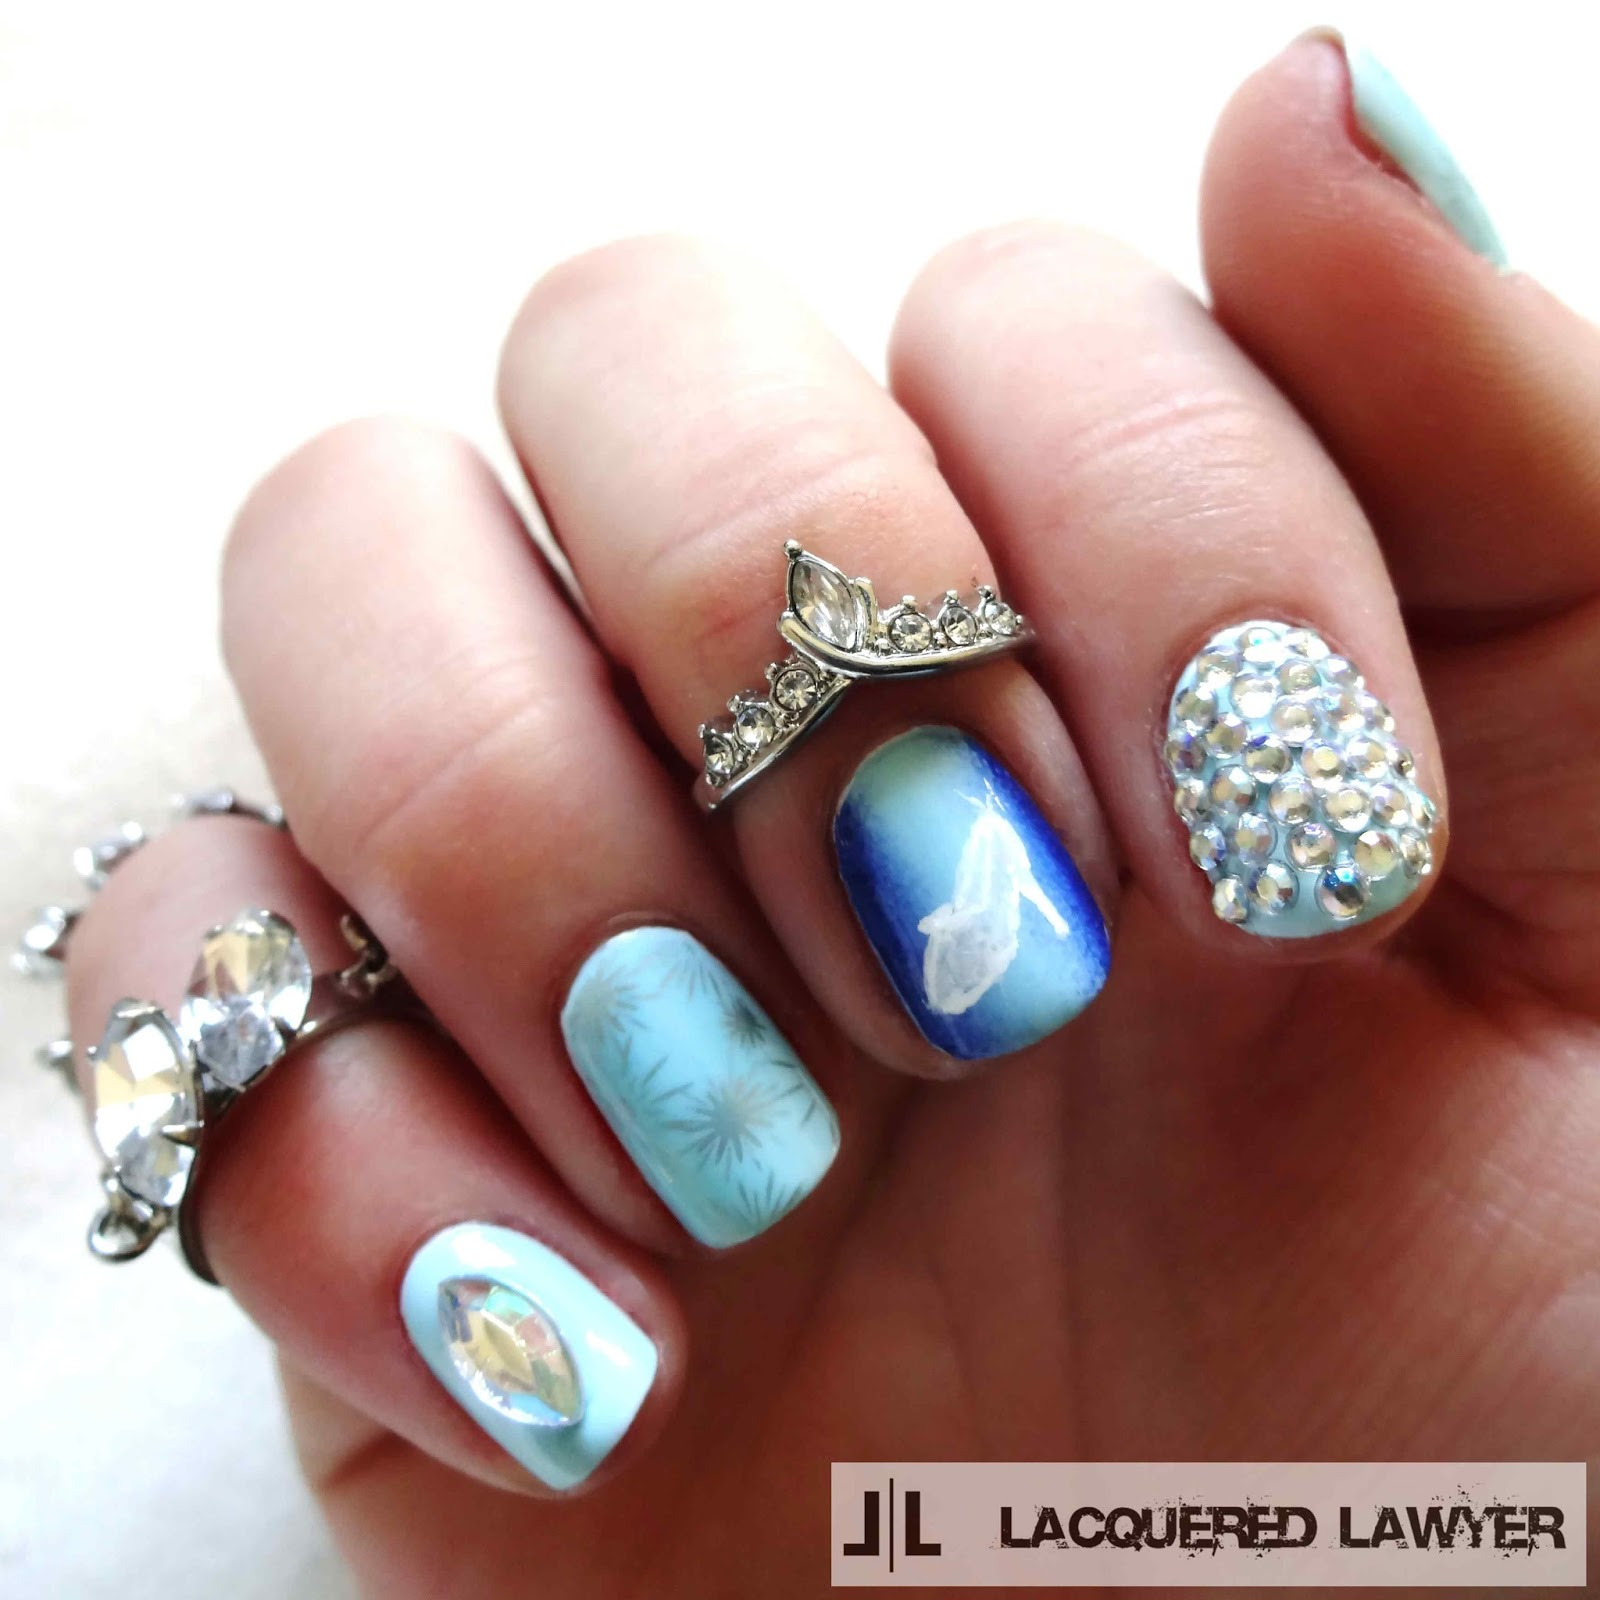 Lacquered Lawyer | Nail Art Blog: Stroke of Midnight